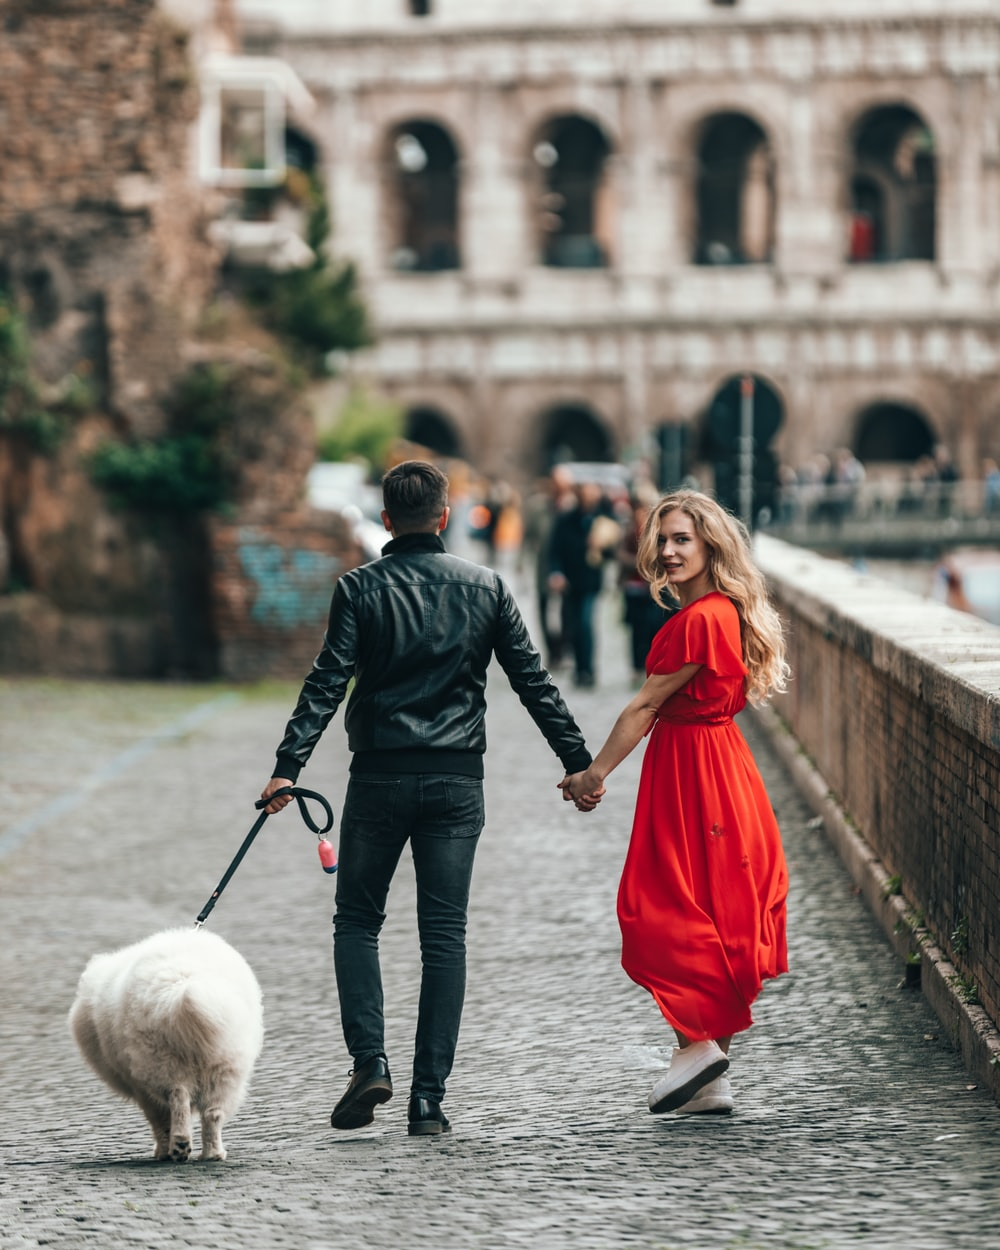 man wearing black jacket holding leash of dog and woman hand